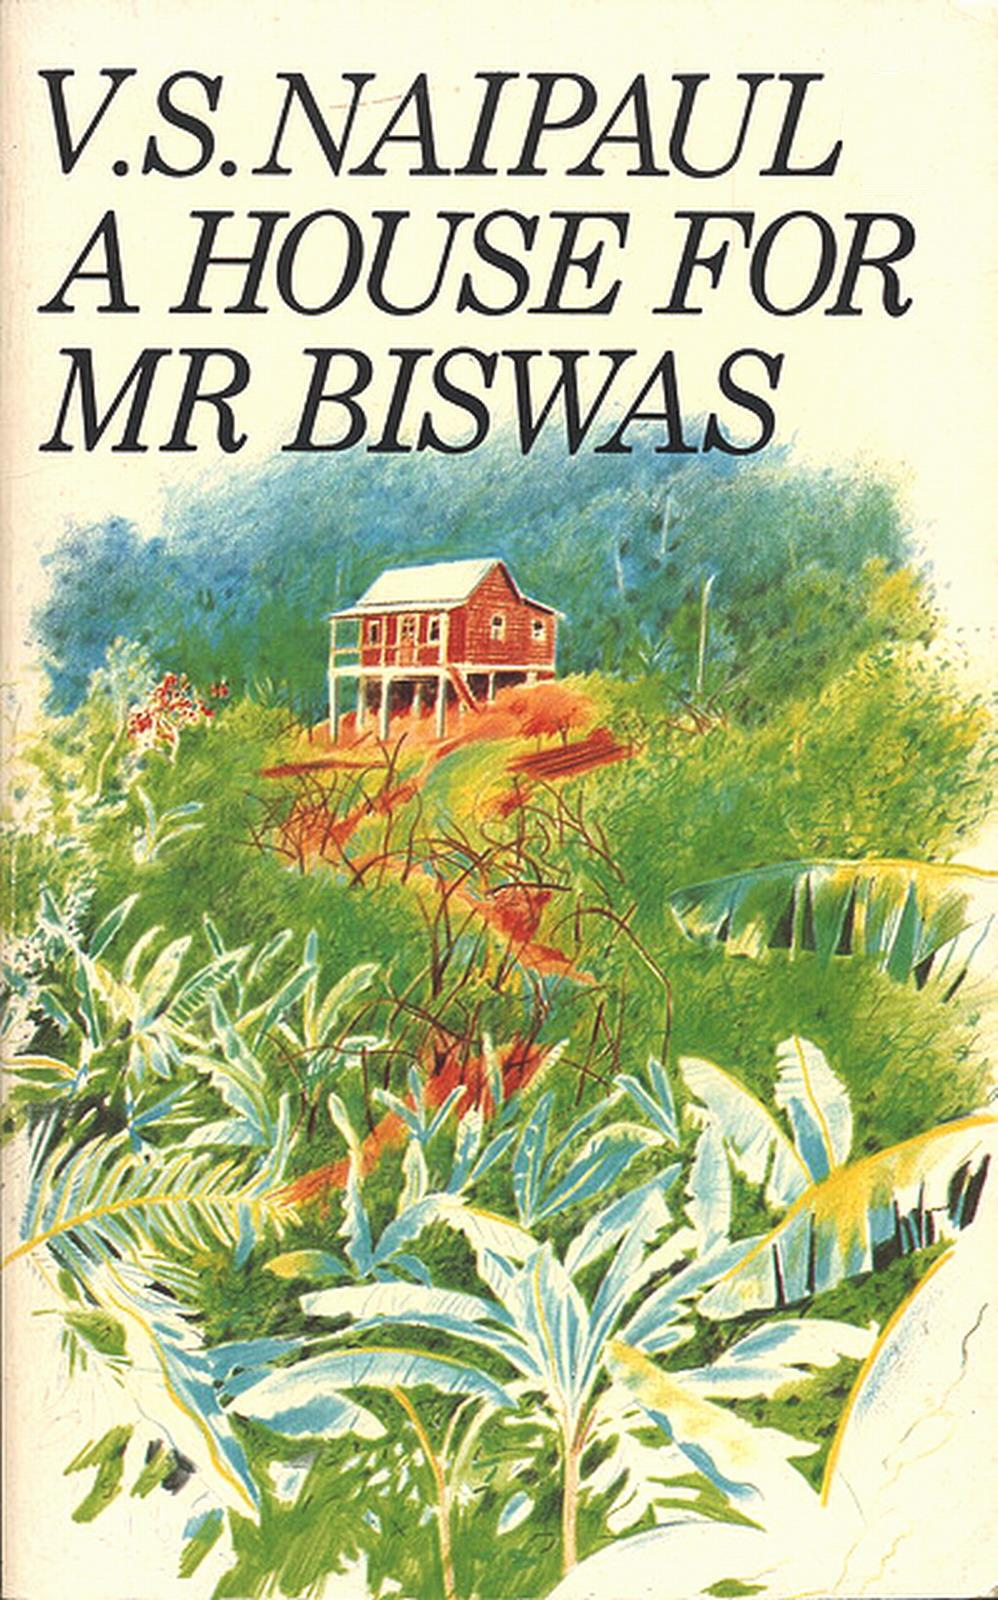 a house for mr biswas my A house for mr biswas follows the life of mr mohun biswas, a protagonist inspired by naipaul's father, as he struggles to find his freedom and a house of his own.